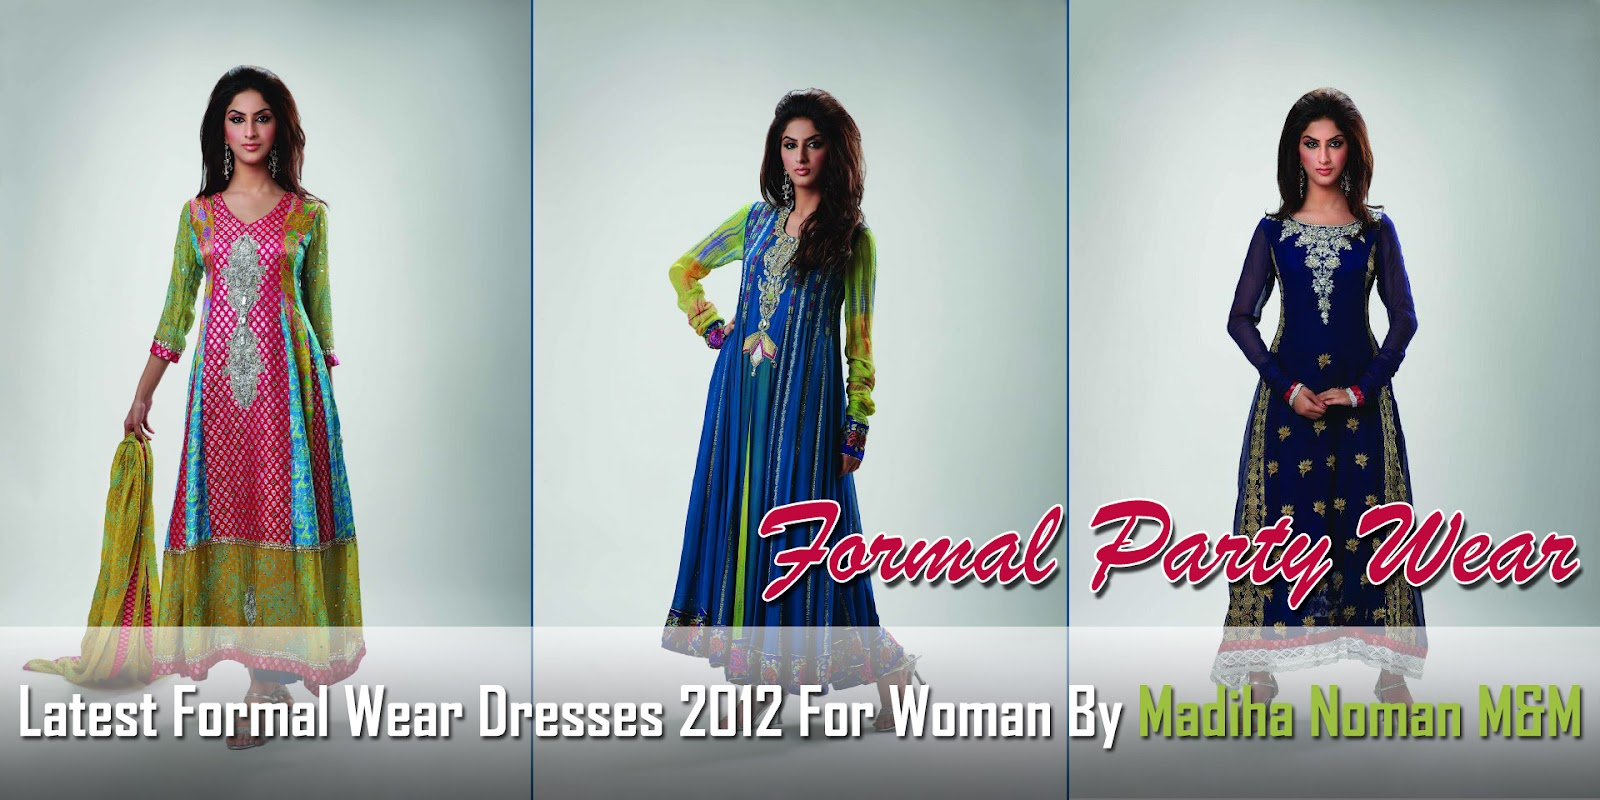 Latest Formal Wear Dresses 2012 For Womans By Madiha Noman MandM ...